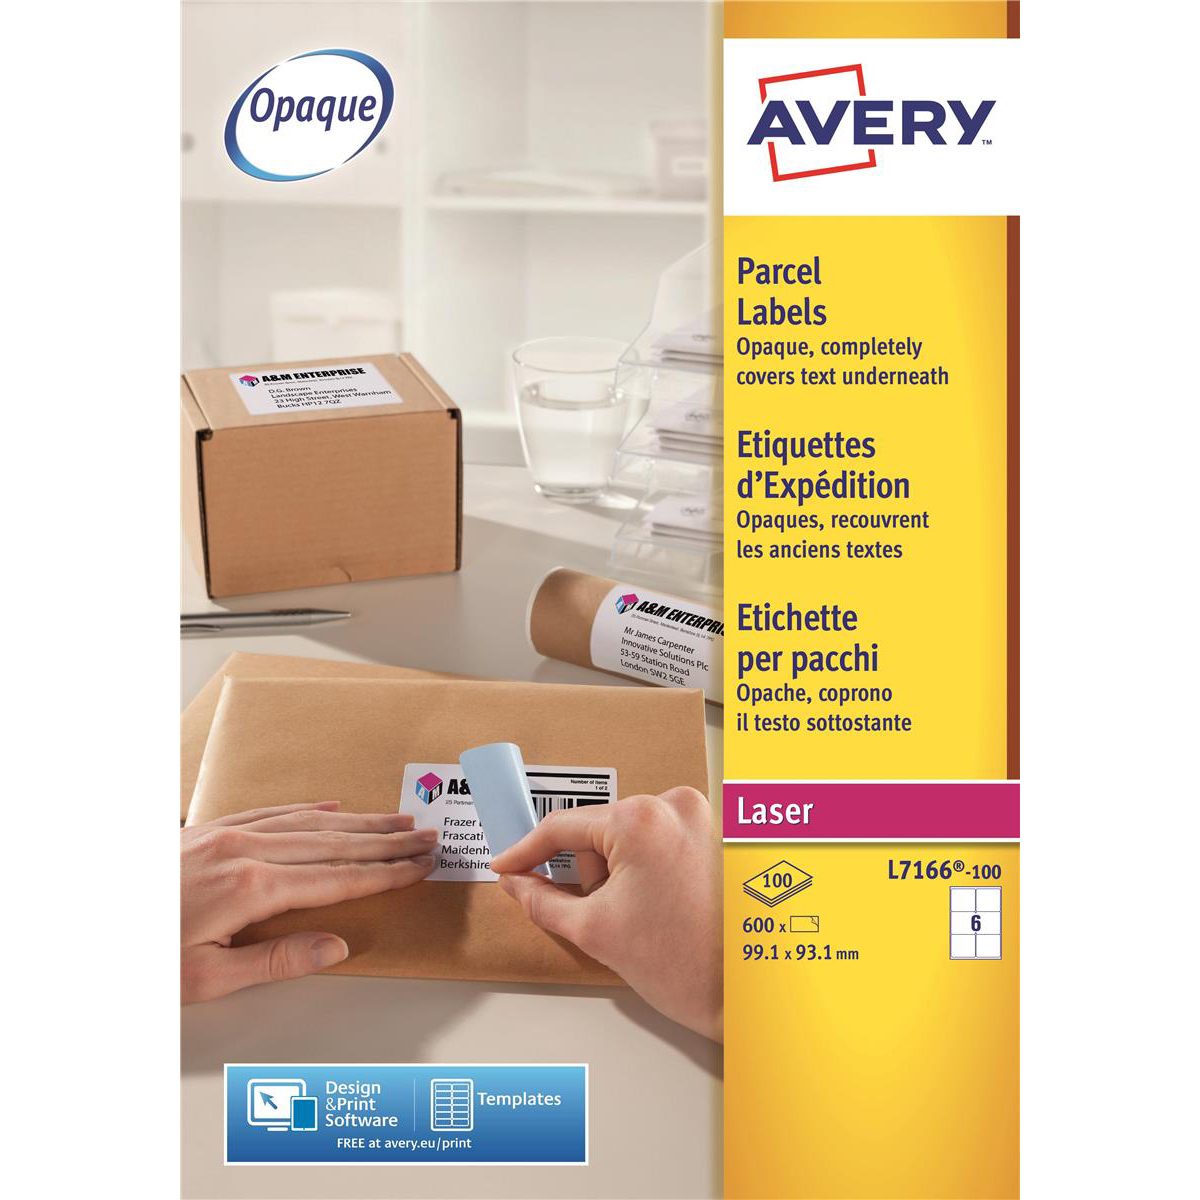 Avery Parcel Labels Laser Jam-free 6 per Sheet 99.1x93.1mm Opaque White Ref L7166-100 600 Labels